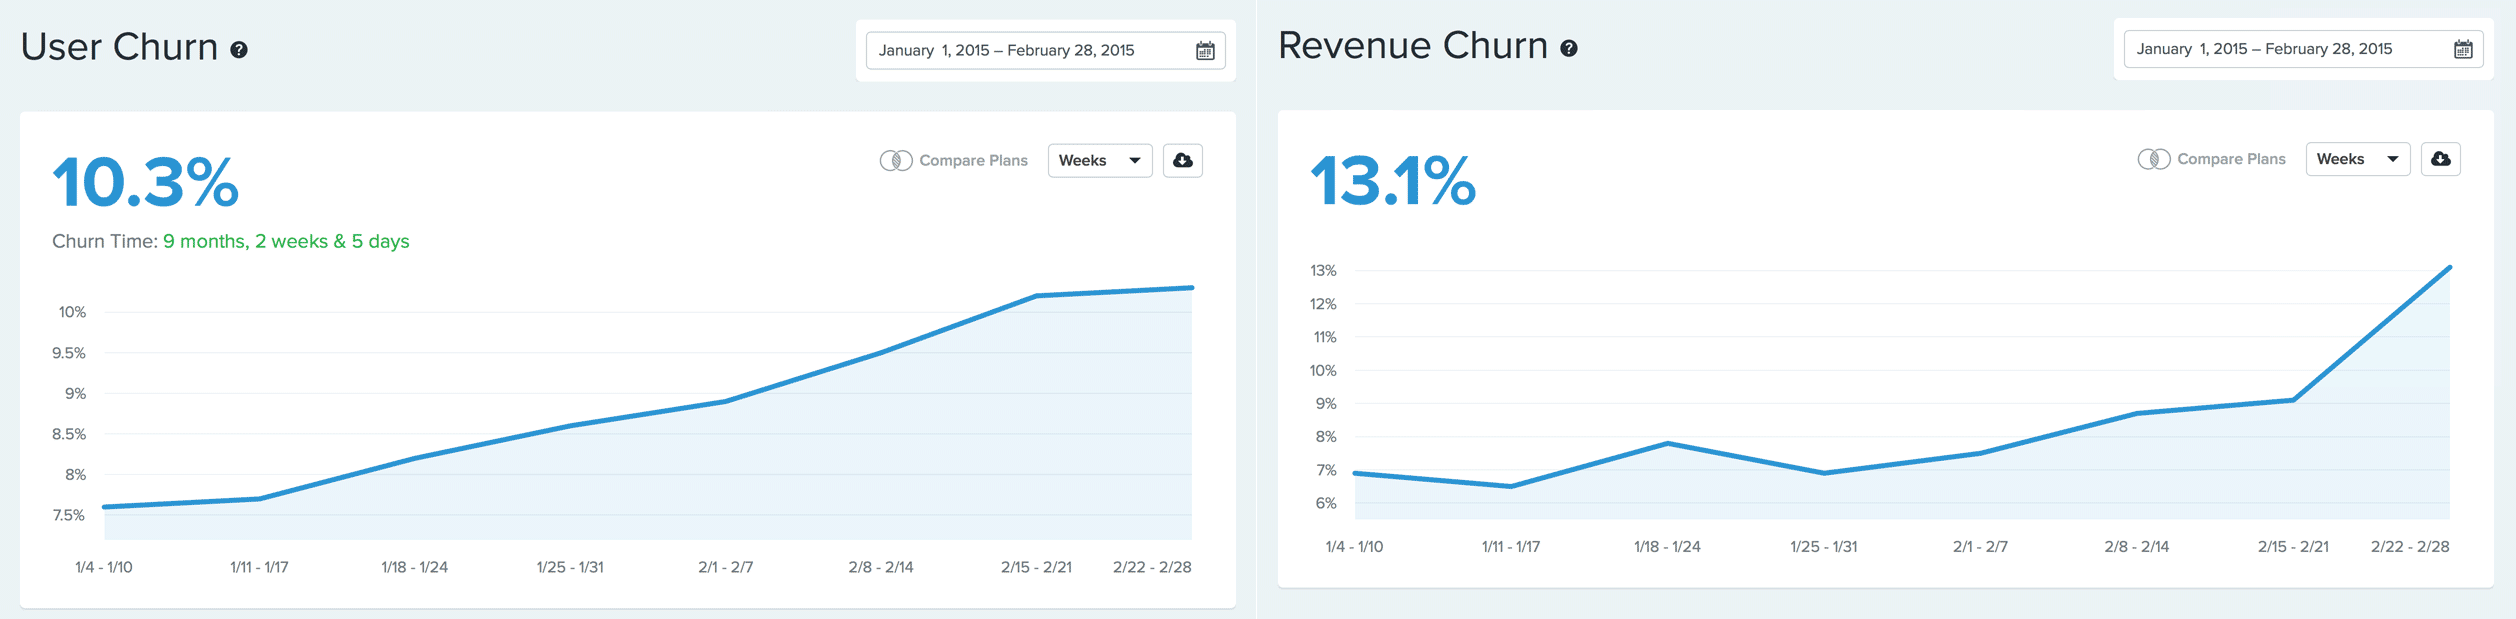 these are two example graphs showing user churn and reveneue churn